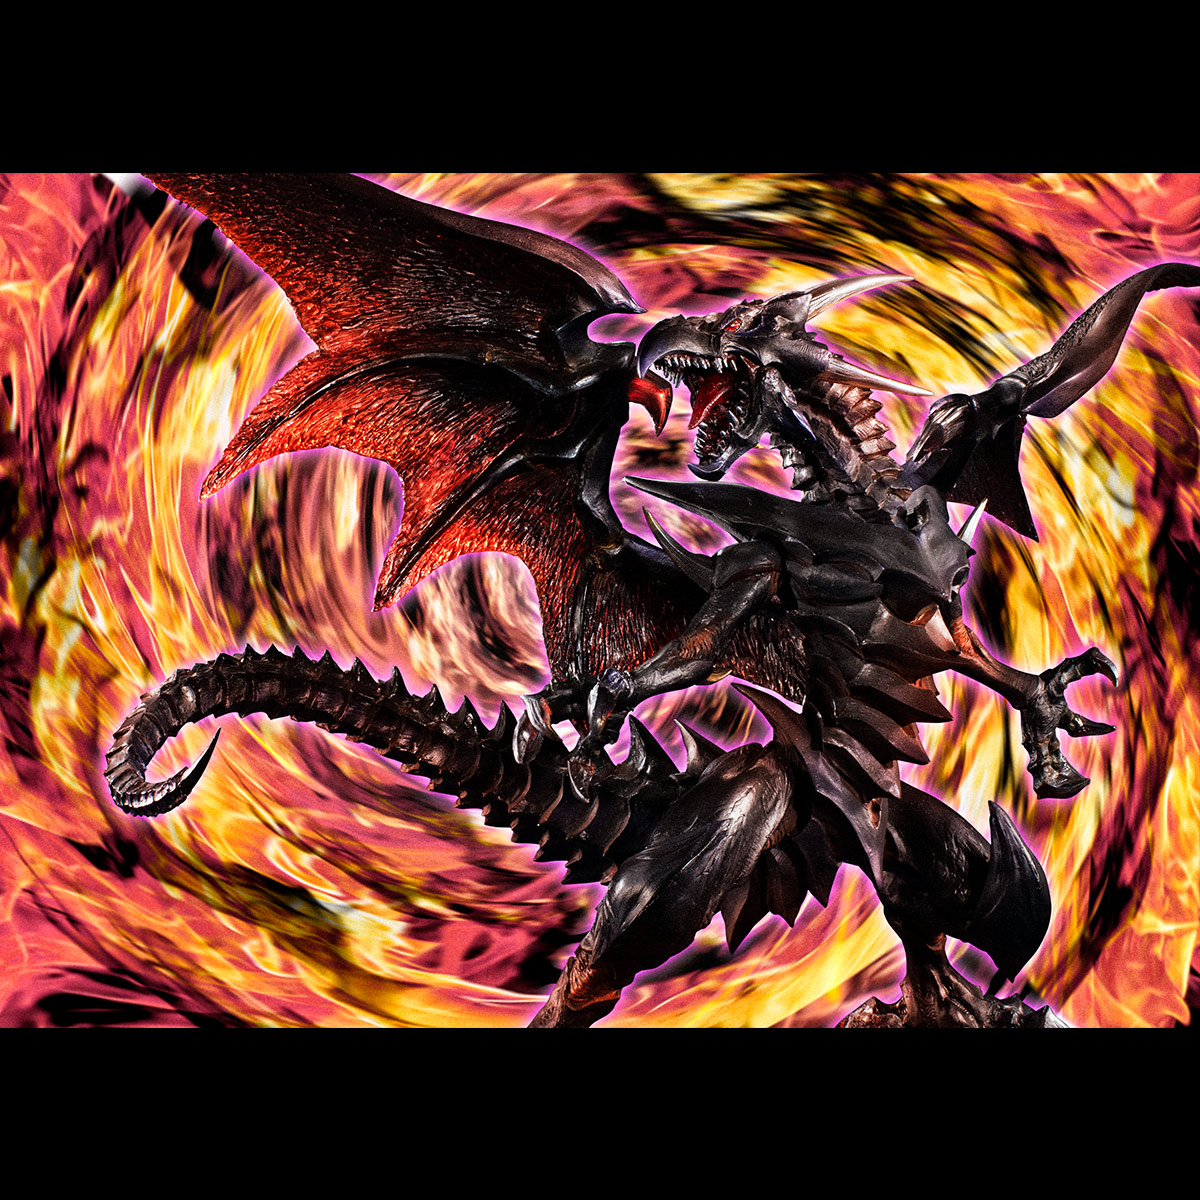 ART WORKS MONSTERS ART WORKS MONSTERS 『遊☆戯☆王デュエルモンスターズ』 真紅眼の黒竜